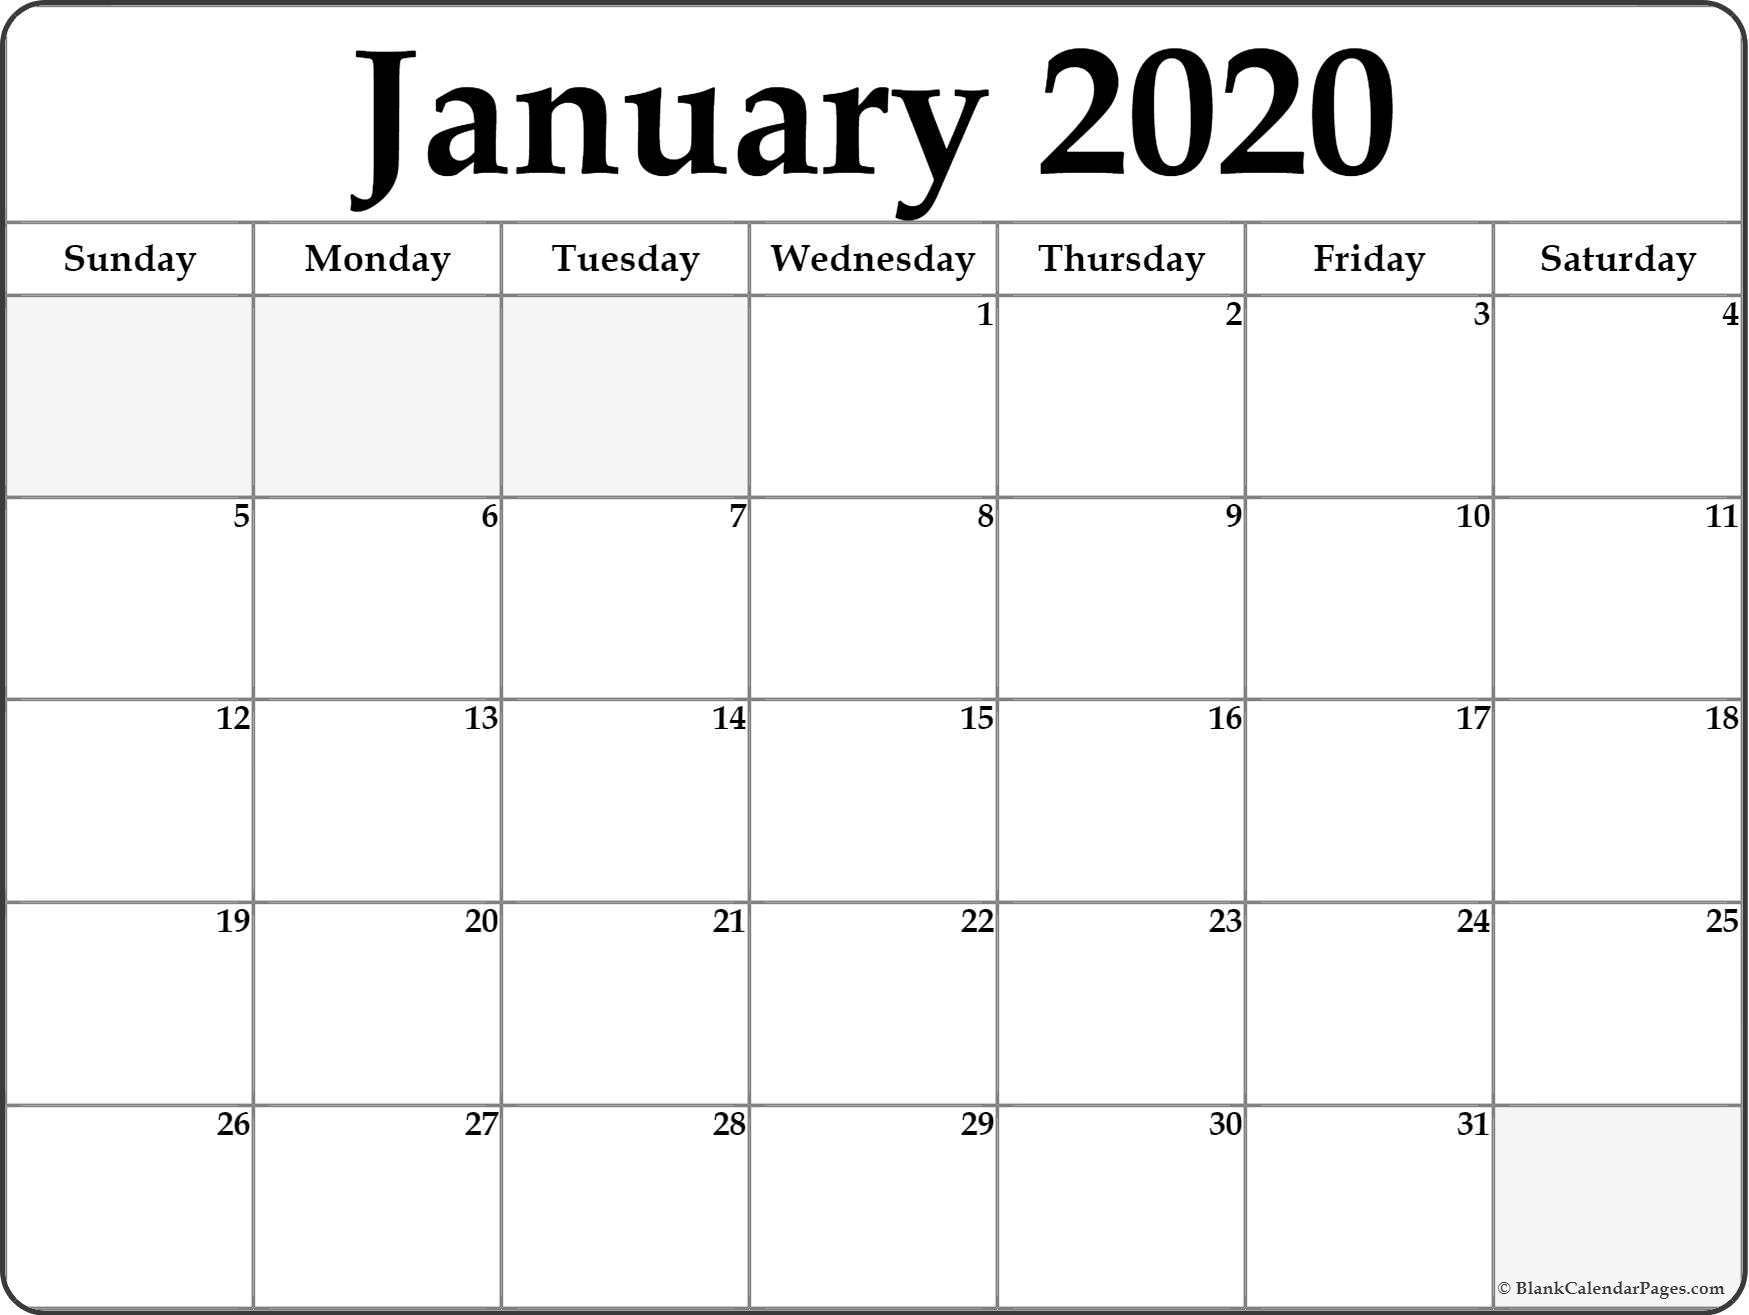 January 2020 Calendar | Free Printable Monthly Calendars with regard to Show Calendar For January 2020